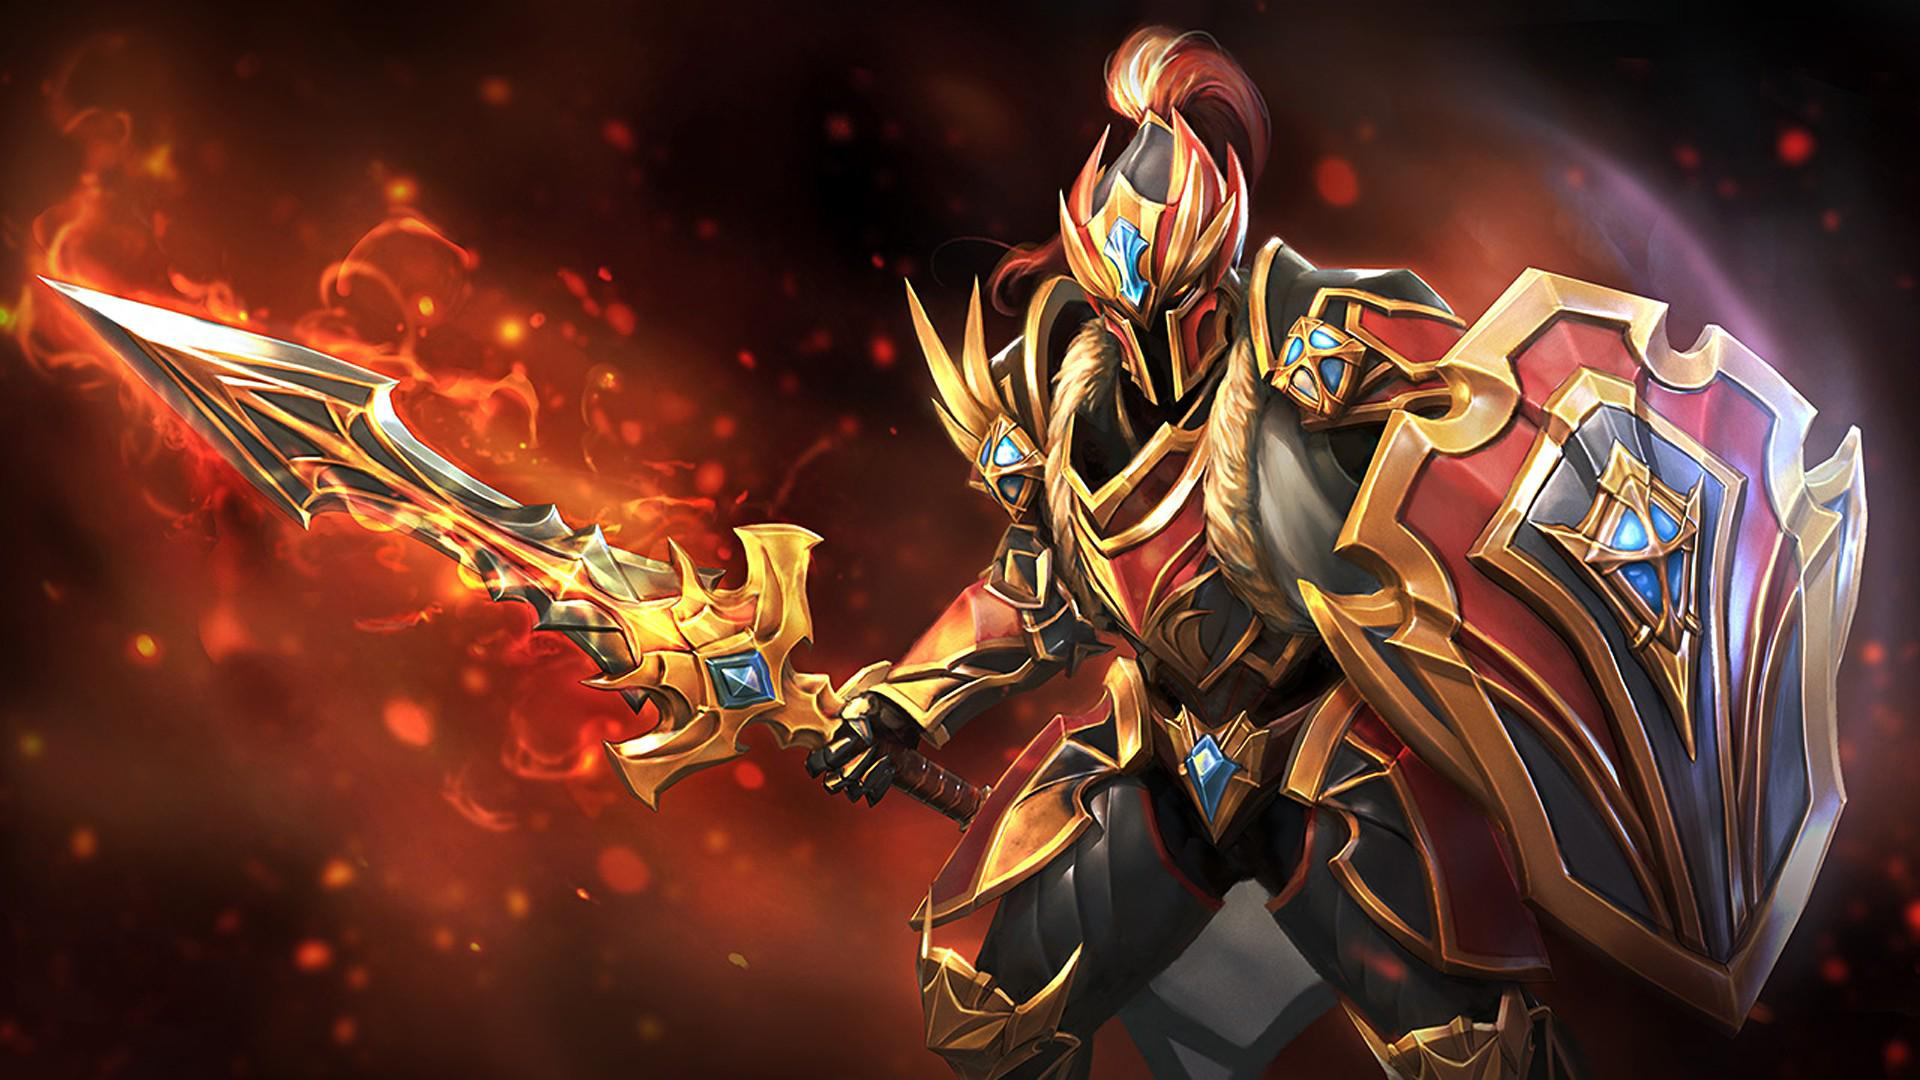 93 Amazing Dota 2 HD Wallpapers For Your PC DMarket